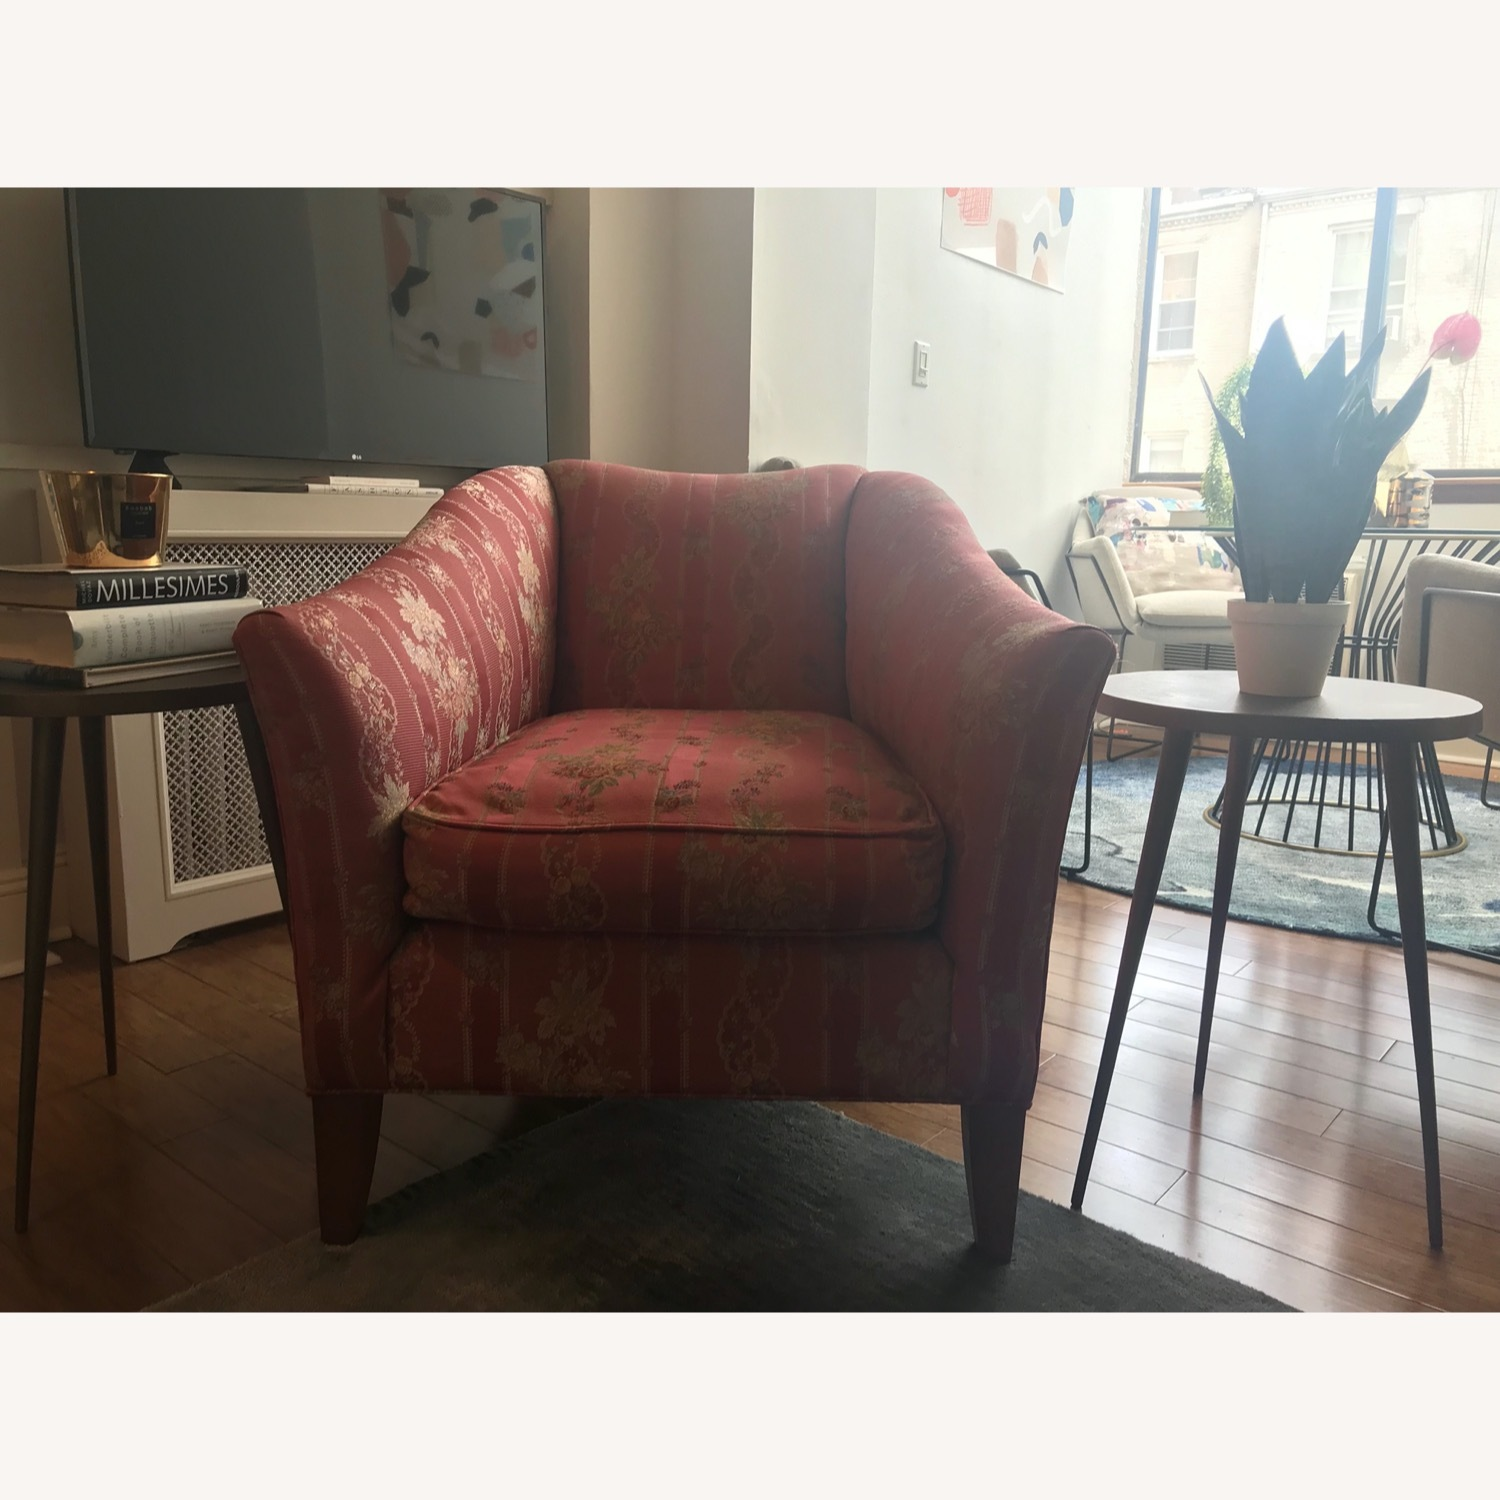 Ethan Allen Rose Accent Arm Chair - image-4